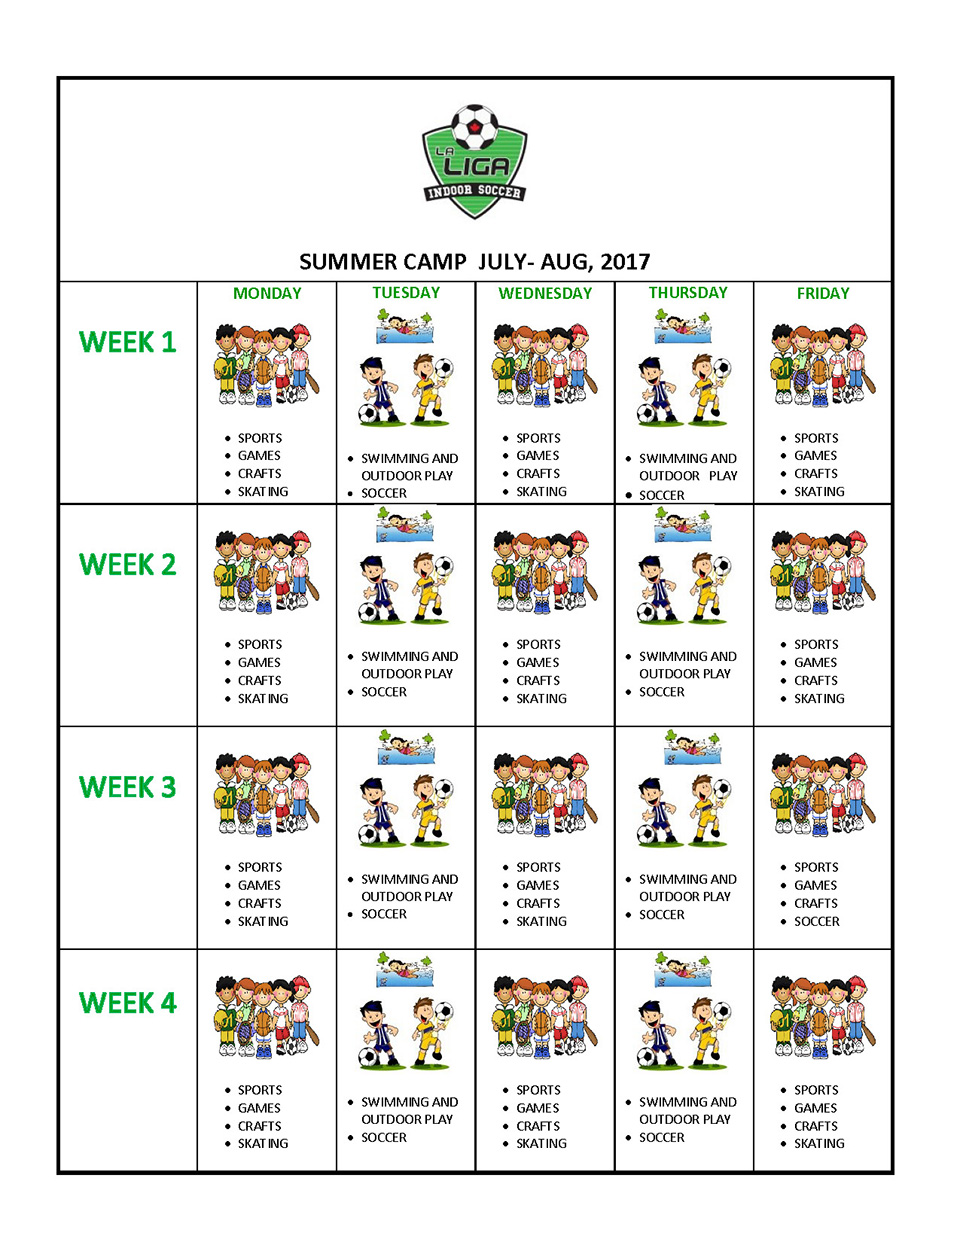 Summer Camp 2017 Program